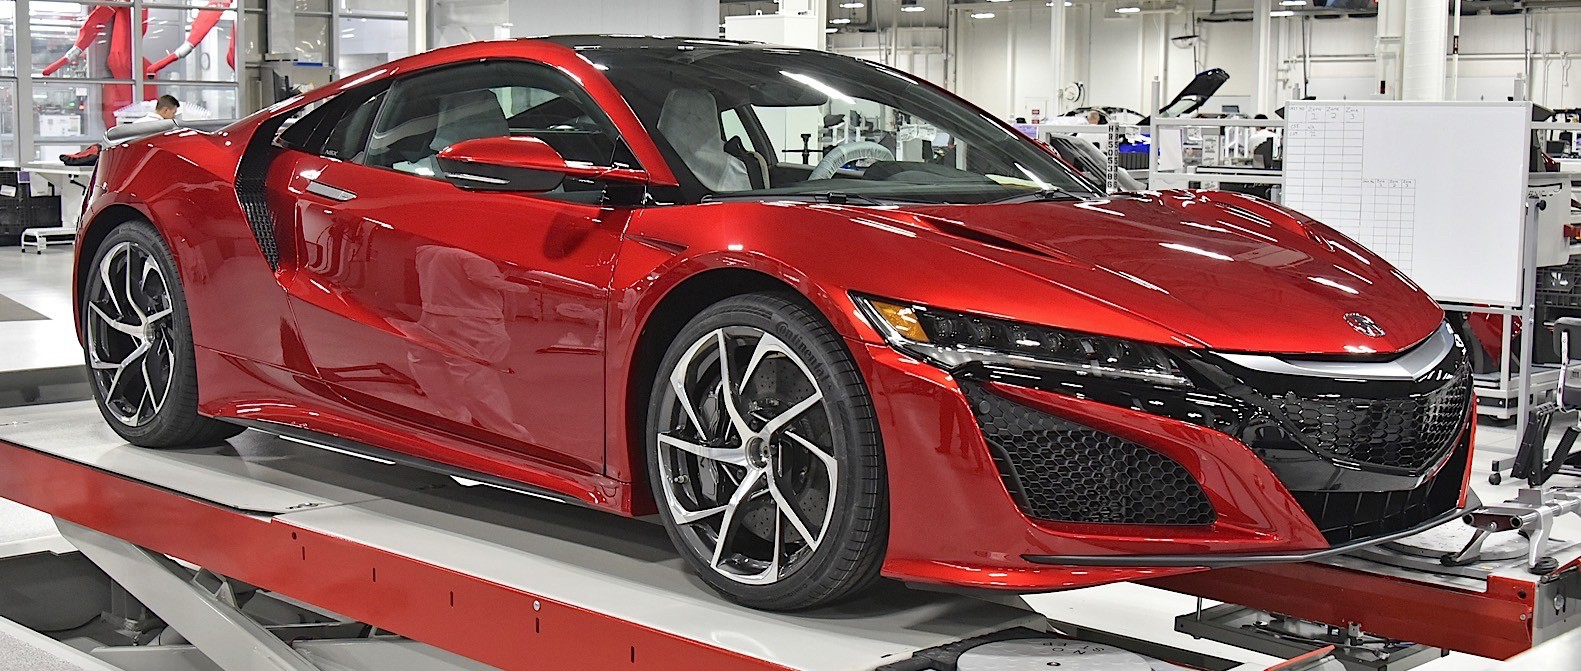 2017 Acura NSX to Receive Hennessey Performance Kit, Twin-Turbo Upgrade Promised - autoevolution